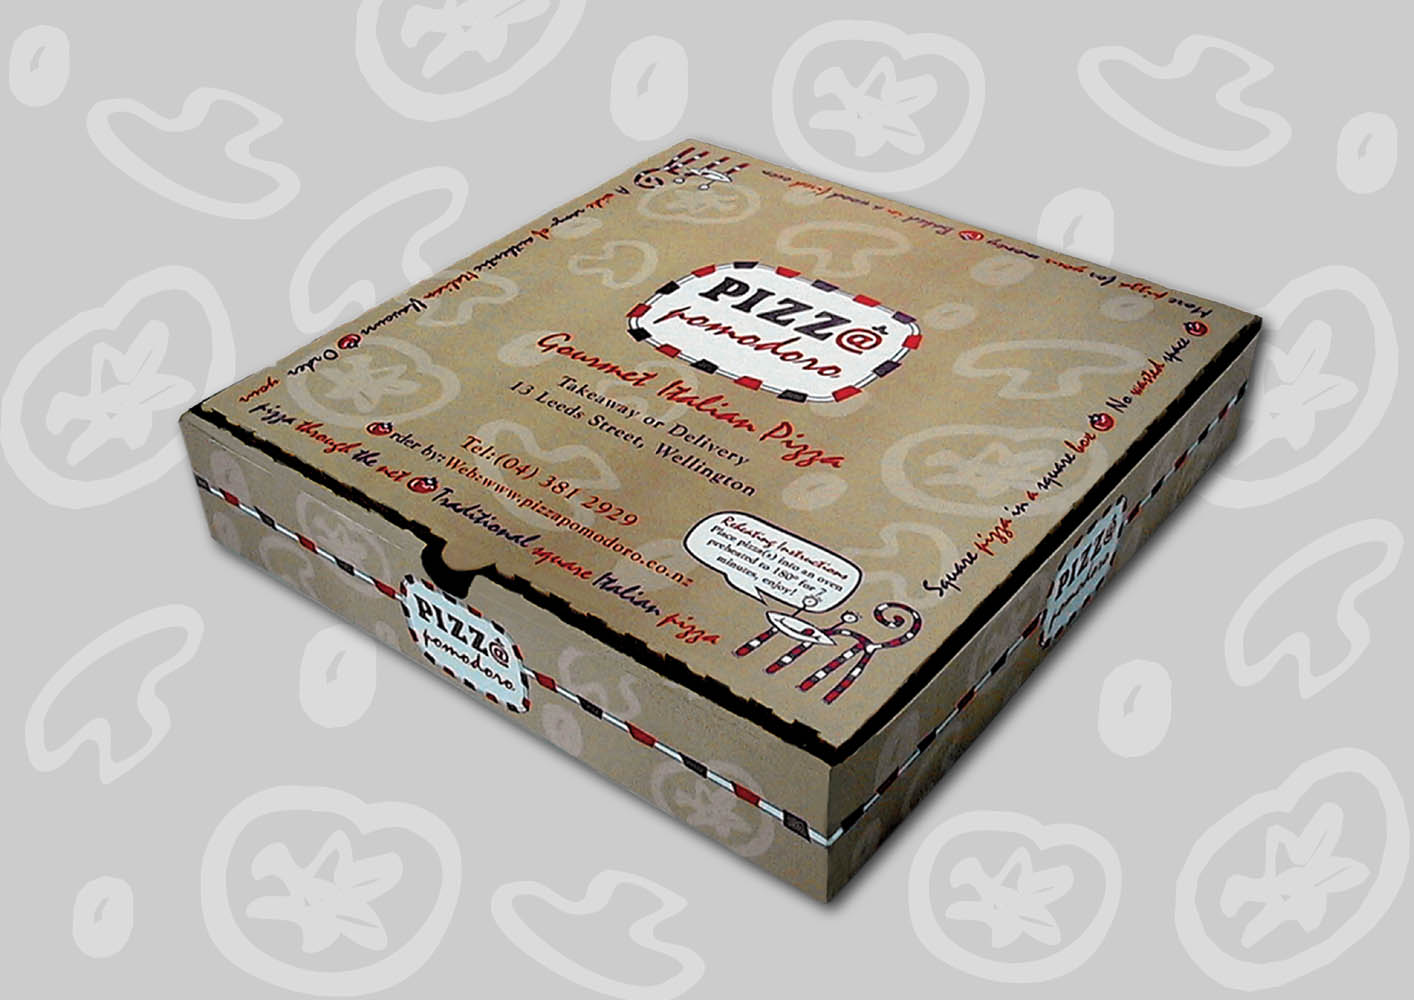 Pizza Pomodoro Packaging